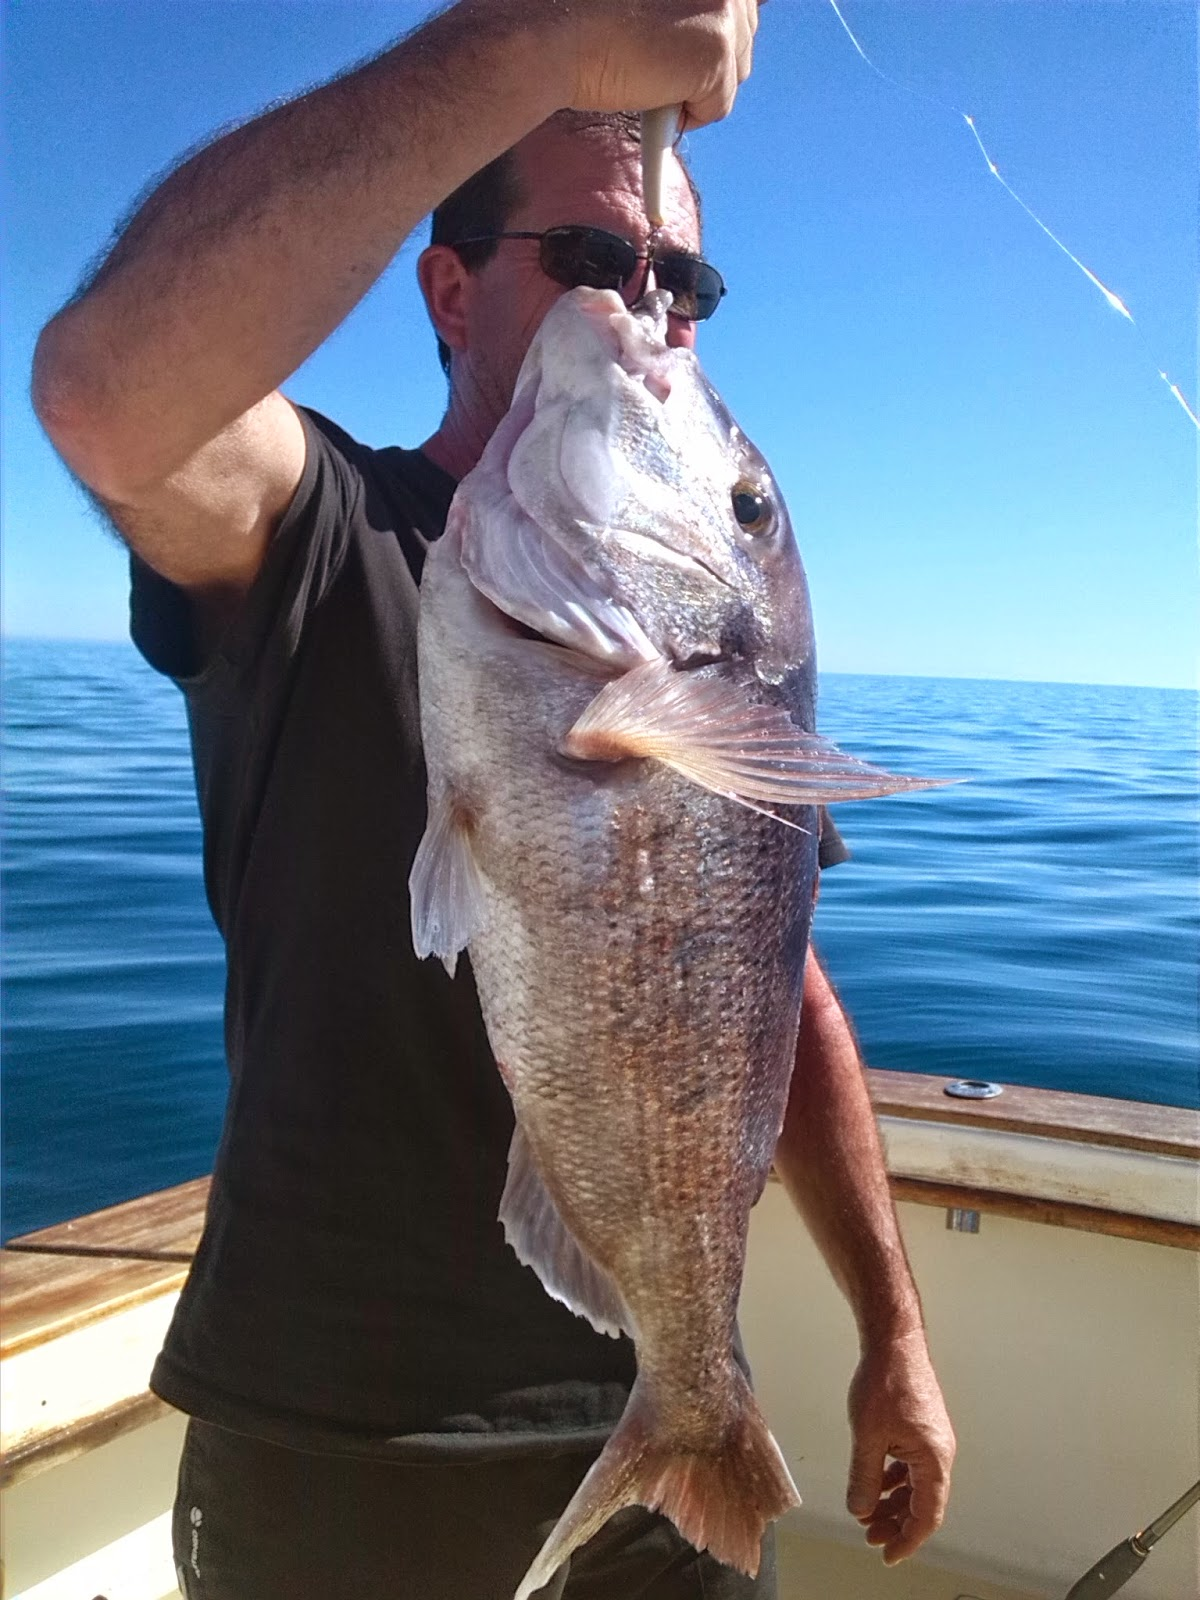 Fishing trip in Marbella, Malaga.